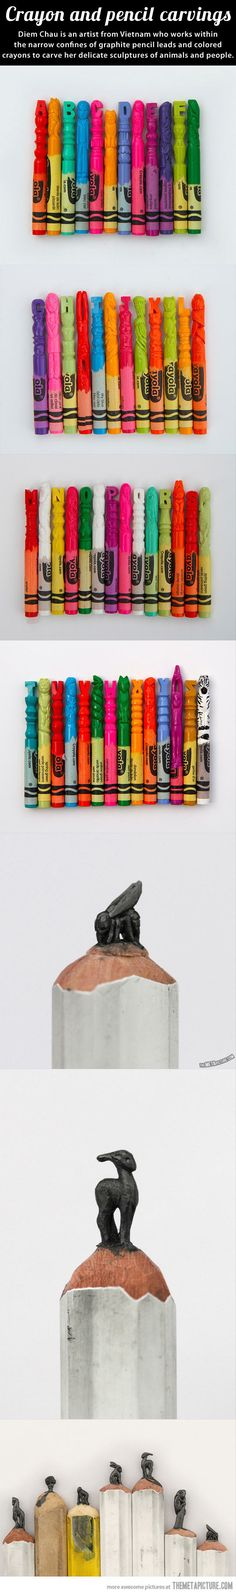 Sometimes I need to remind myself that art isn't just on paper or canvas: Mind-blowing crayon and pencil carvings…